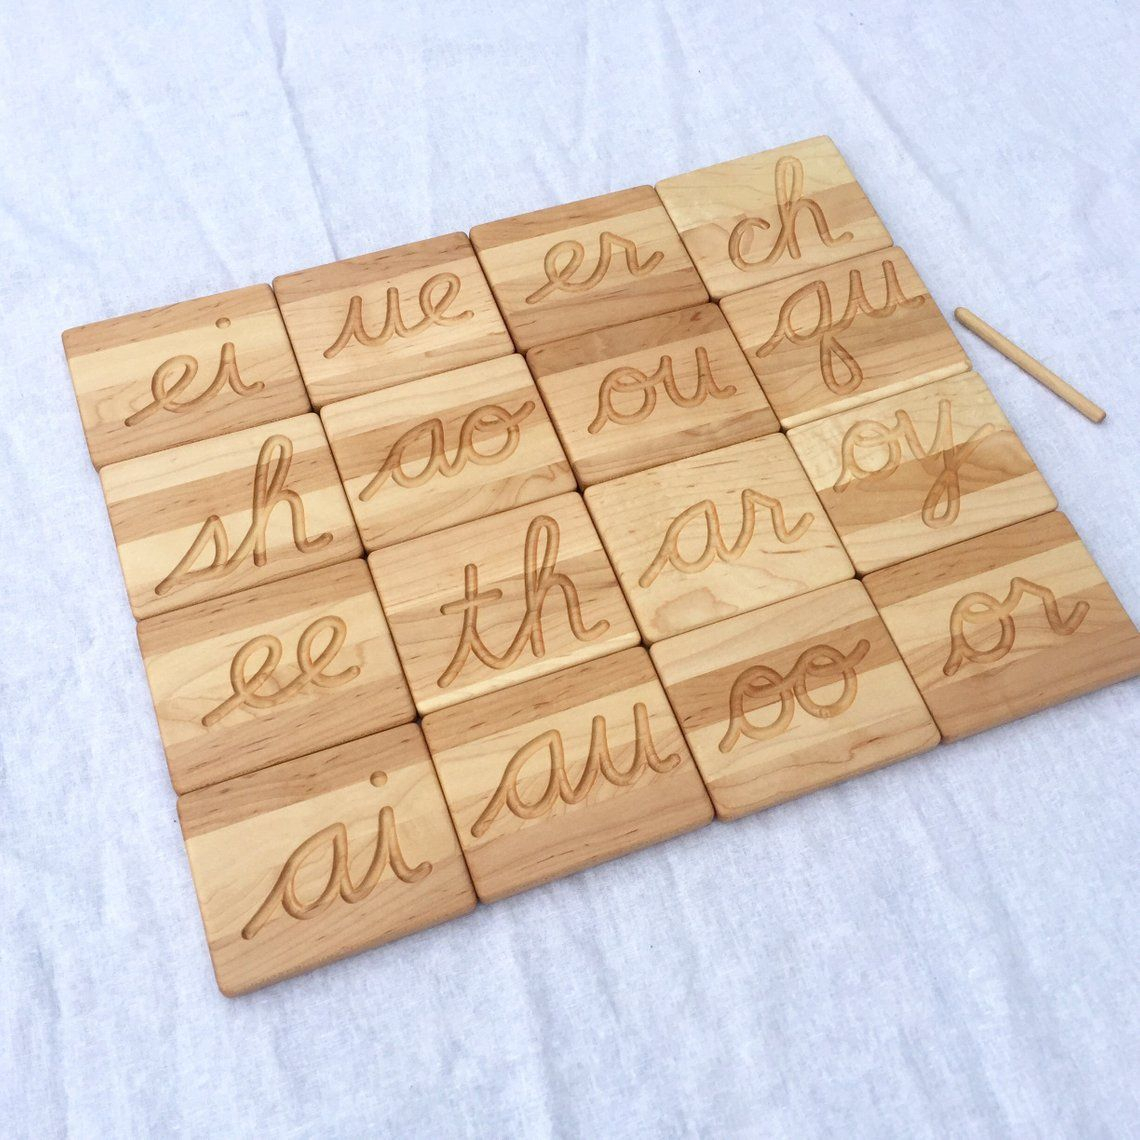 Cursive Double Letter Tracing Wooden Cards | Dremel Dreams pertaining to Wooden Tracing Letters